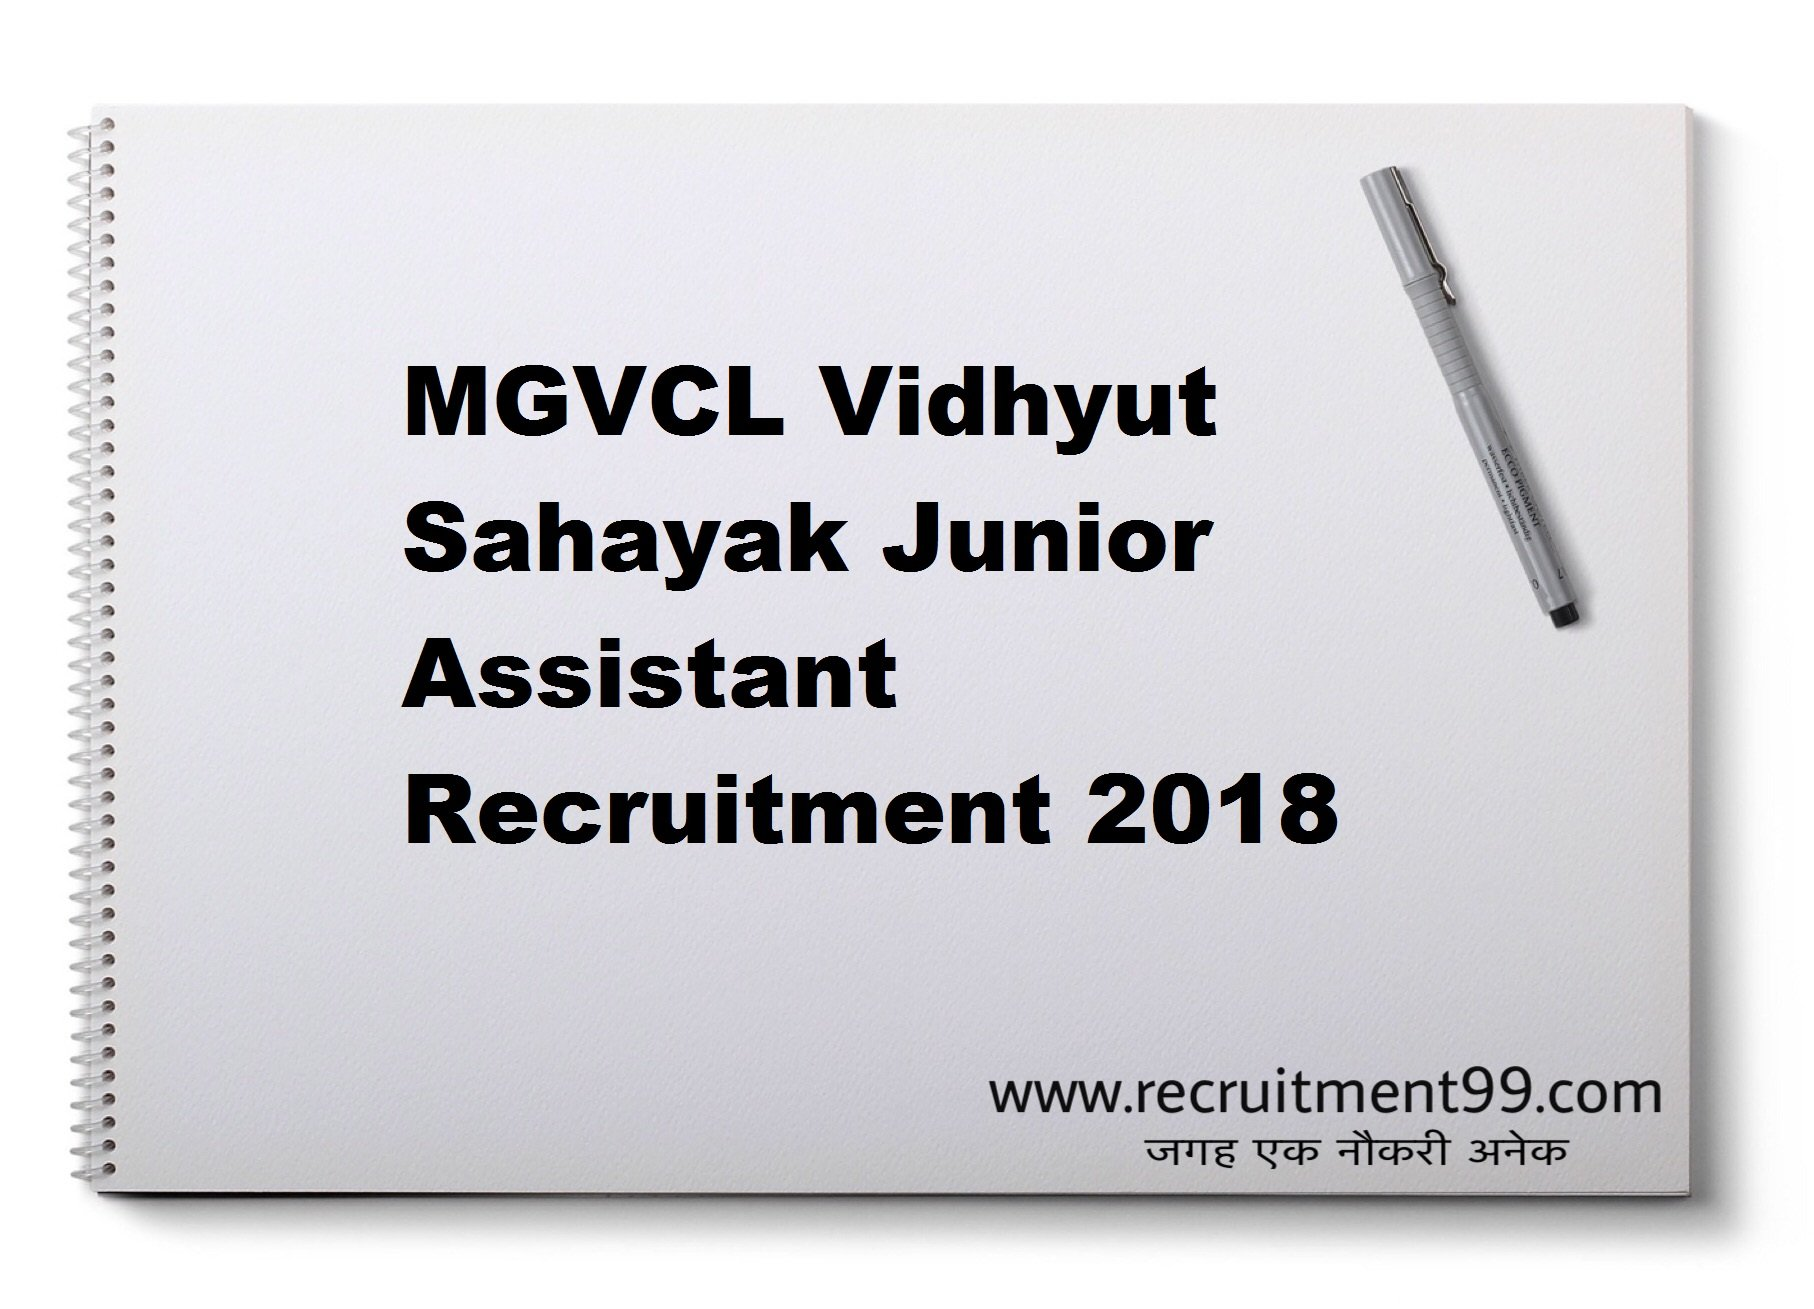 MGVCL Vidhyut Sahayak Junior Assistant Recruitment Admit Card Result 2018